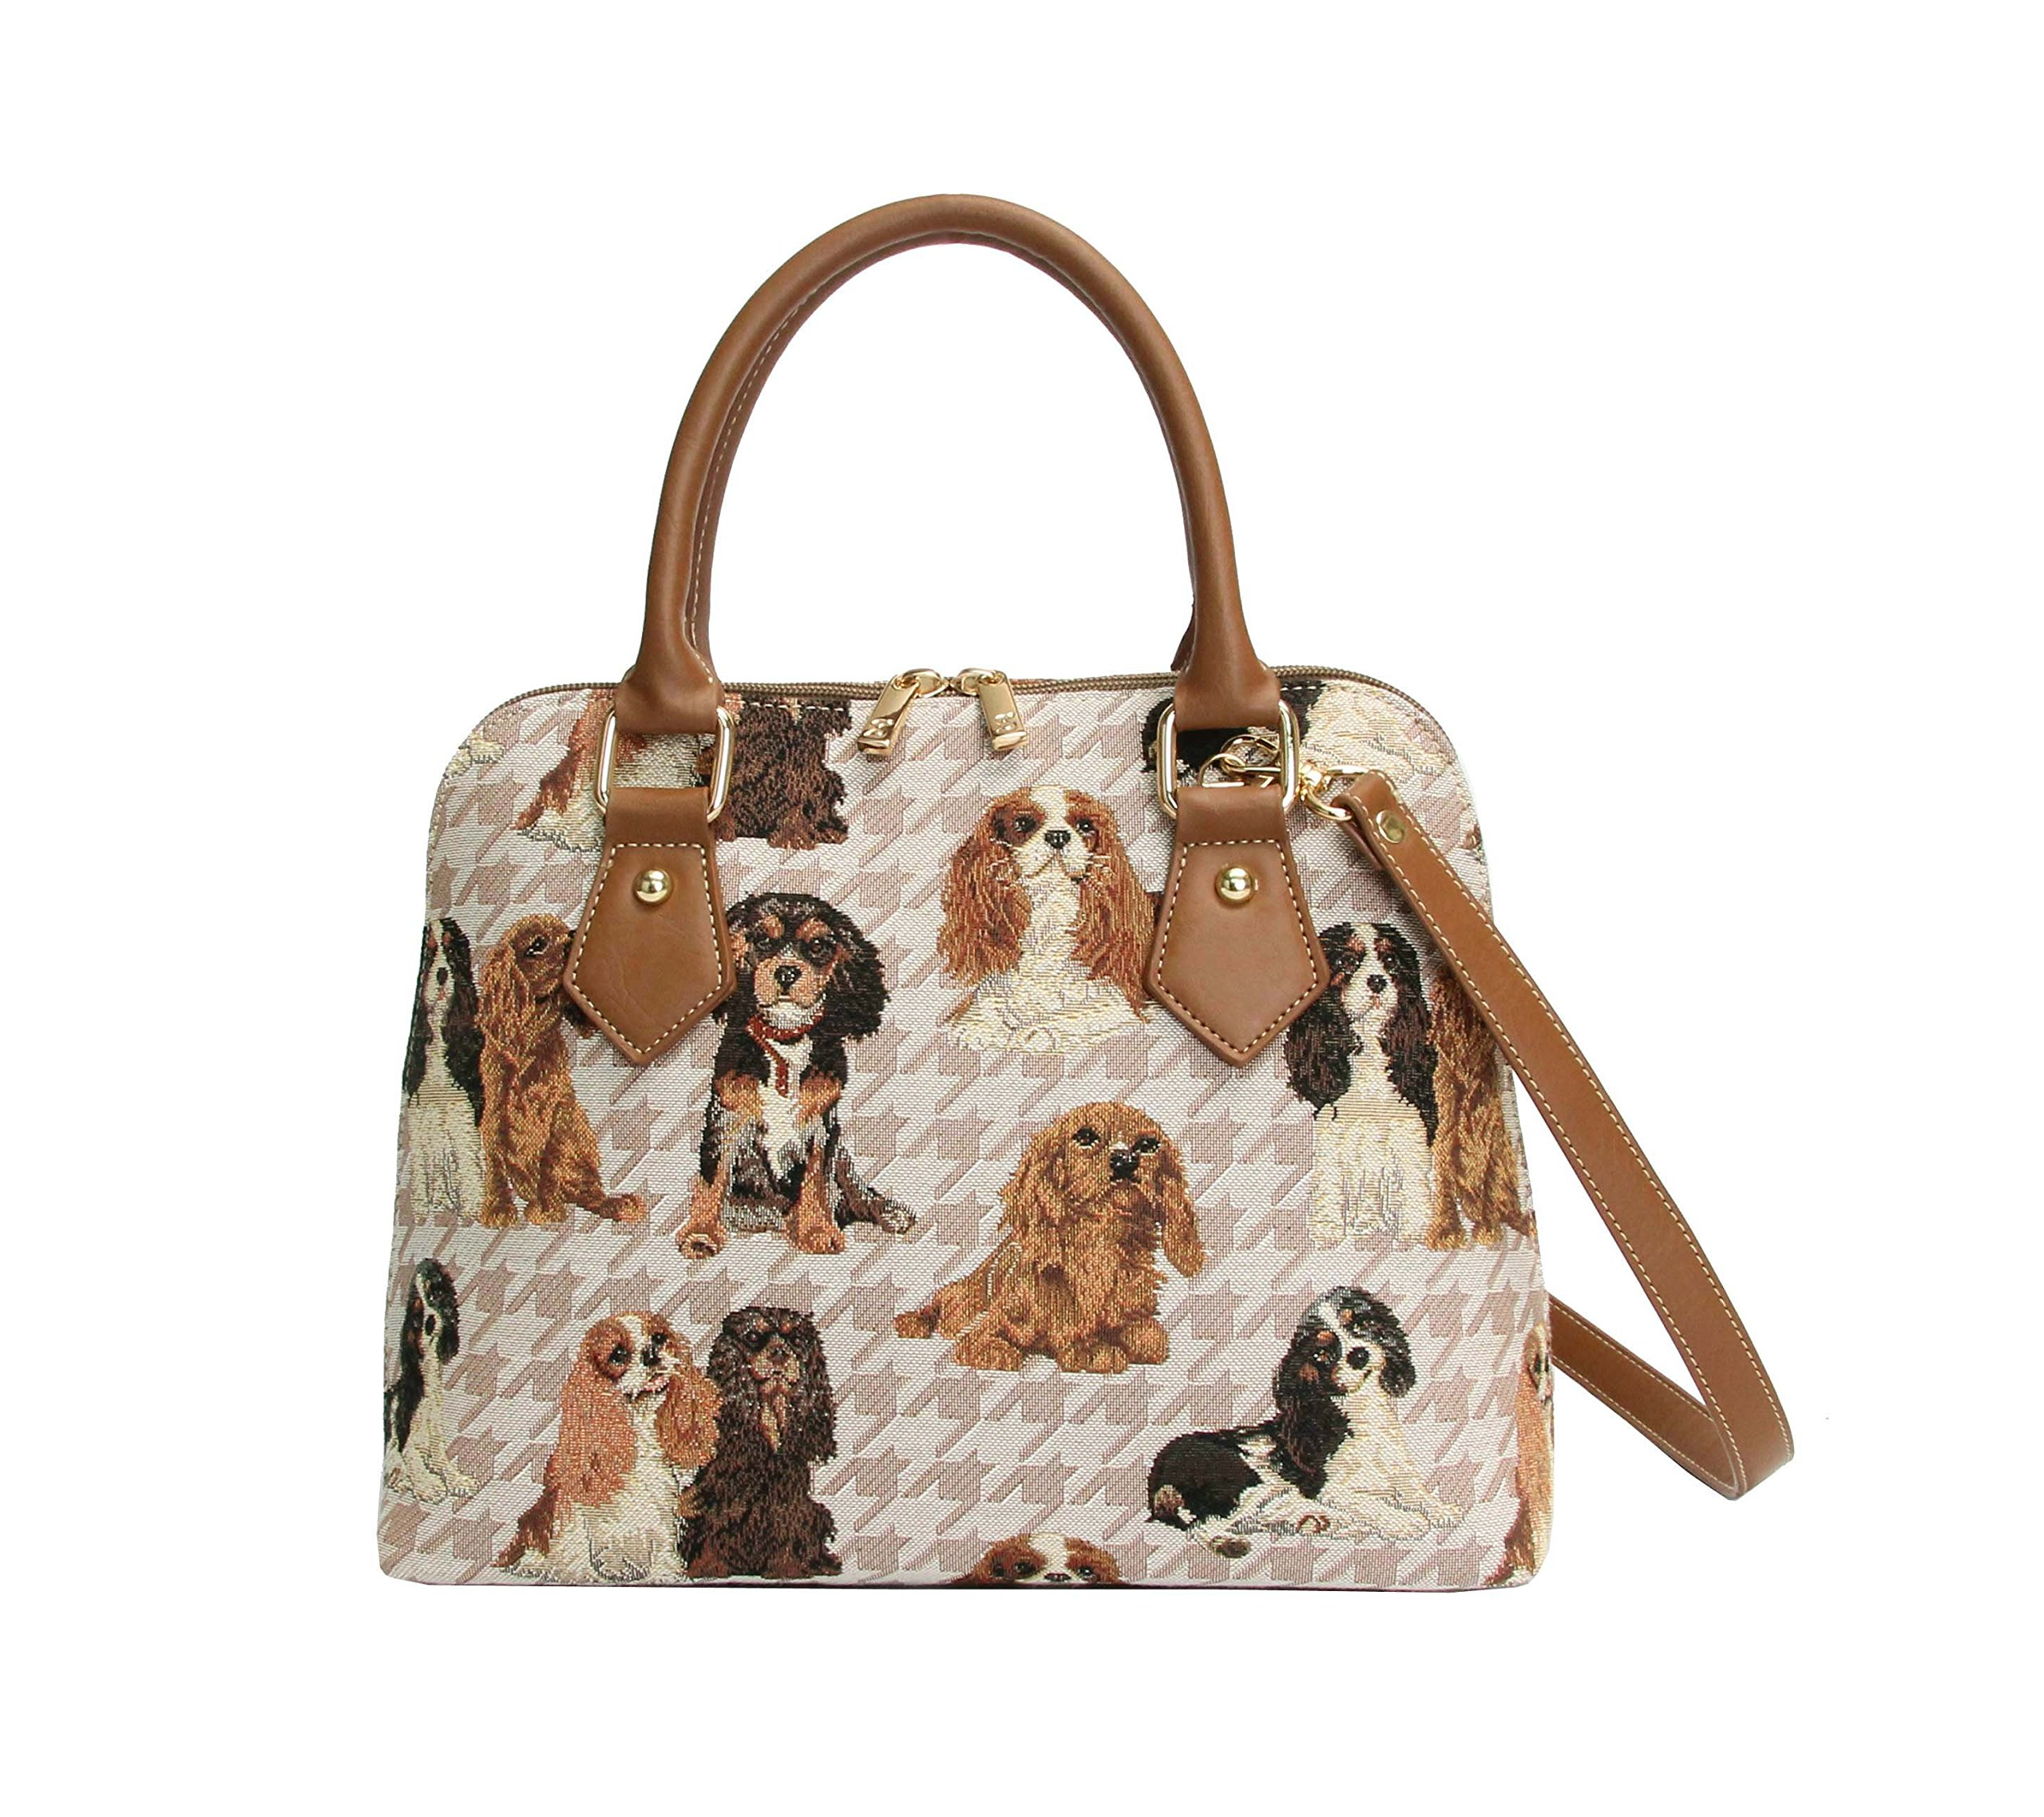 Signare Women's Tapestry Top Handle Handbag With Detachable Strap To Convert To Shoulder Bag With Cavalier King Charles Spaniel Dog (Conv-KGCS)